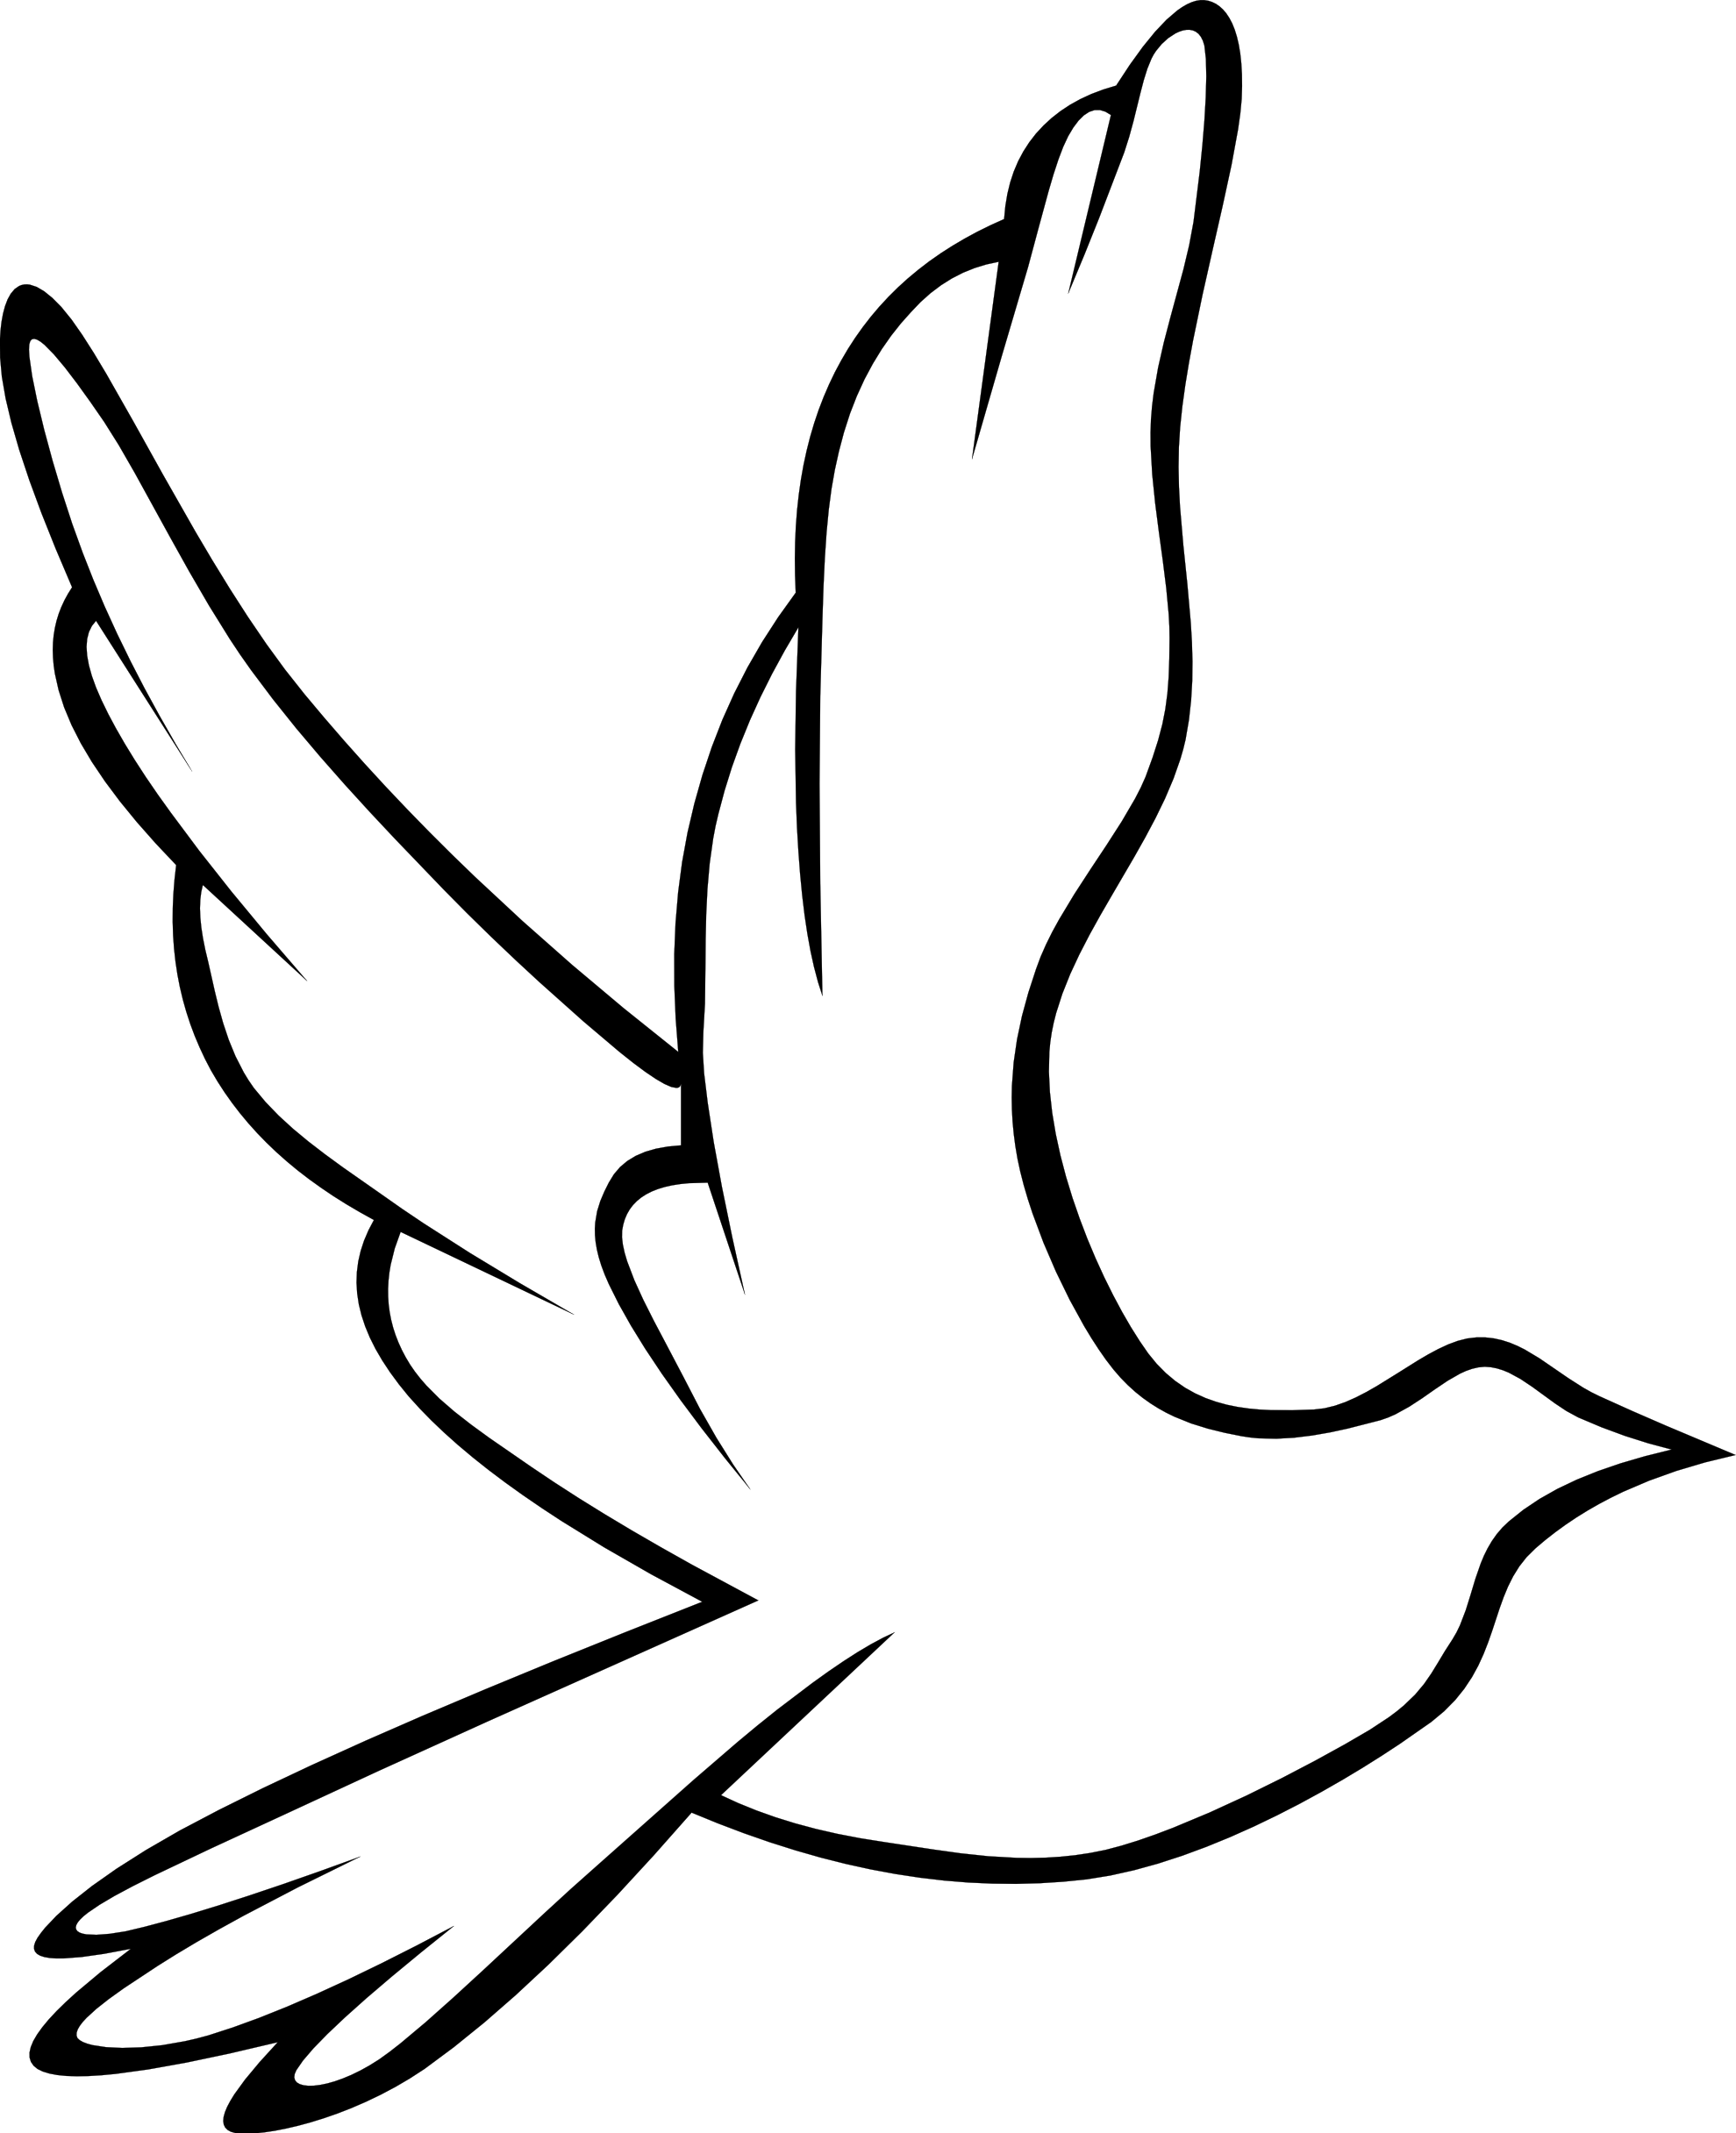 clip art peace dove 1 94 black white line art clipart best rh pinterest co uk peach clip art pictures peach clip art pictures